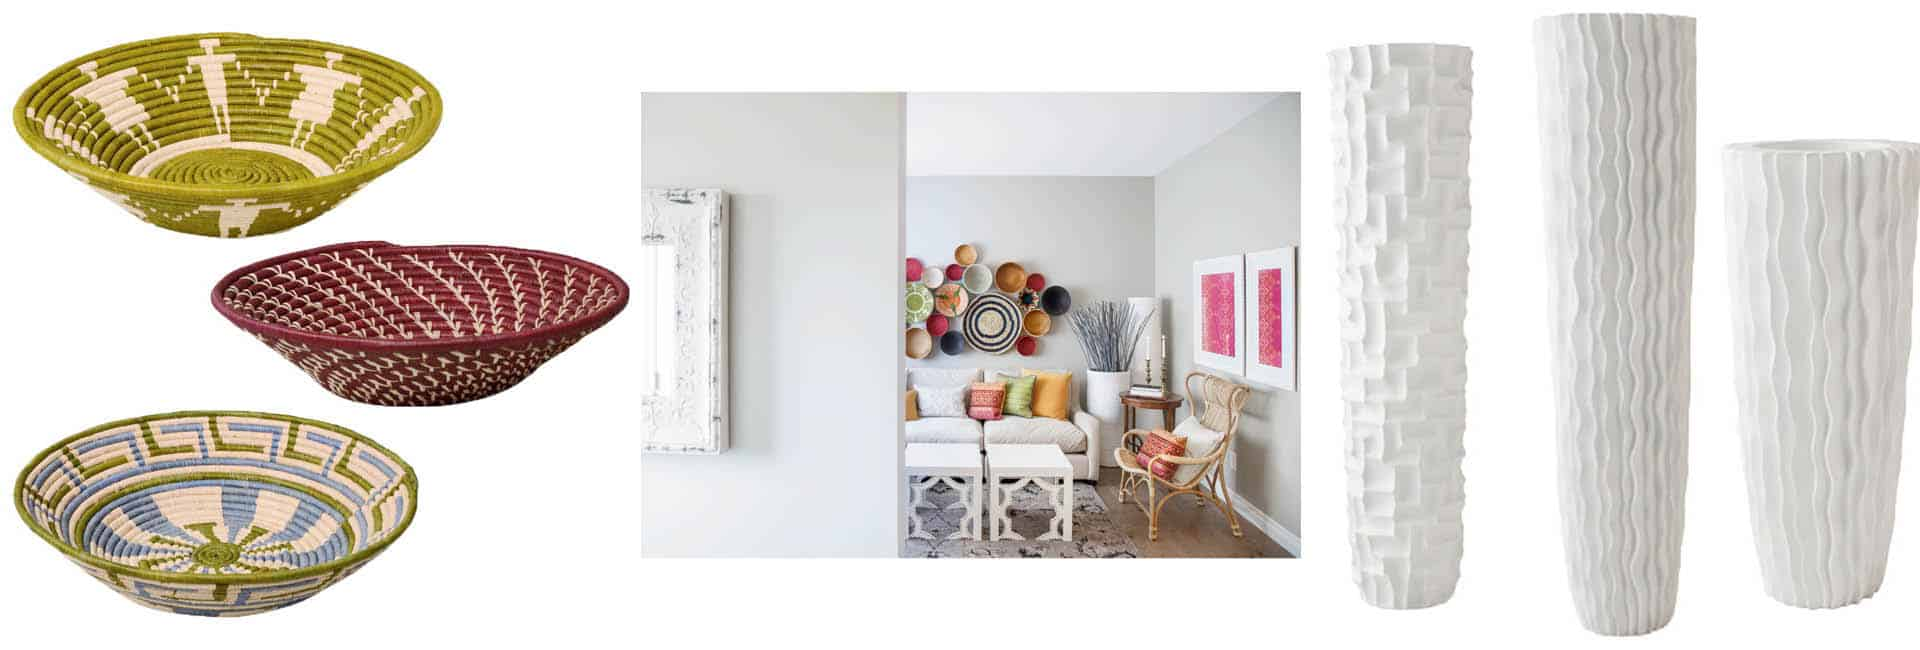 organizing a craft room in a bedroom